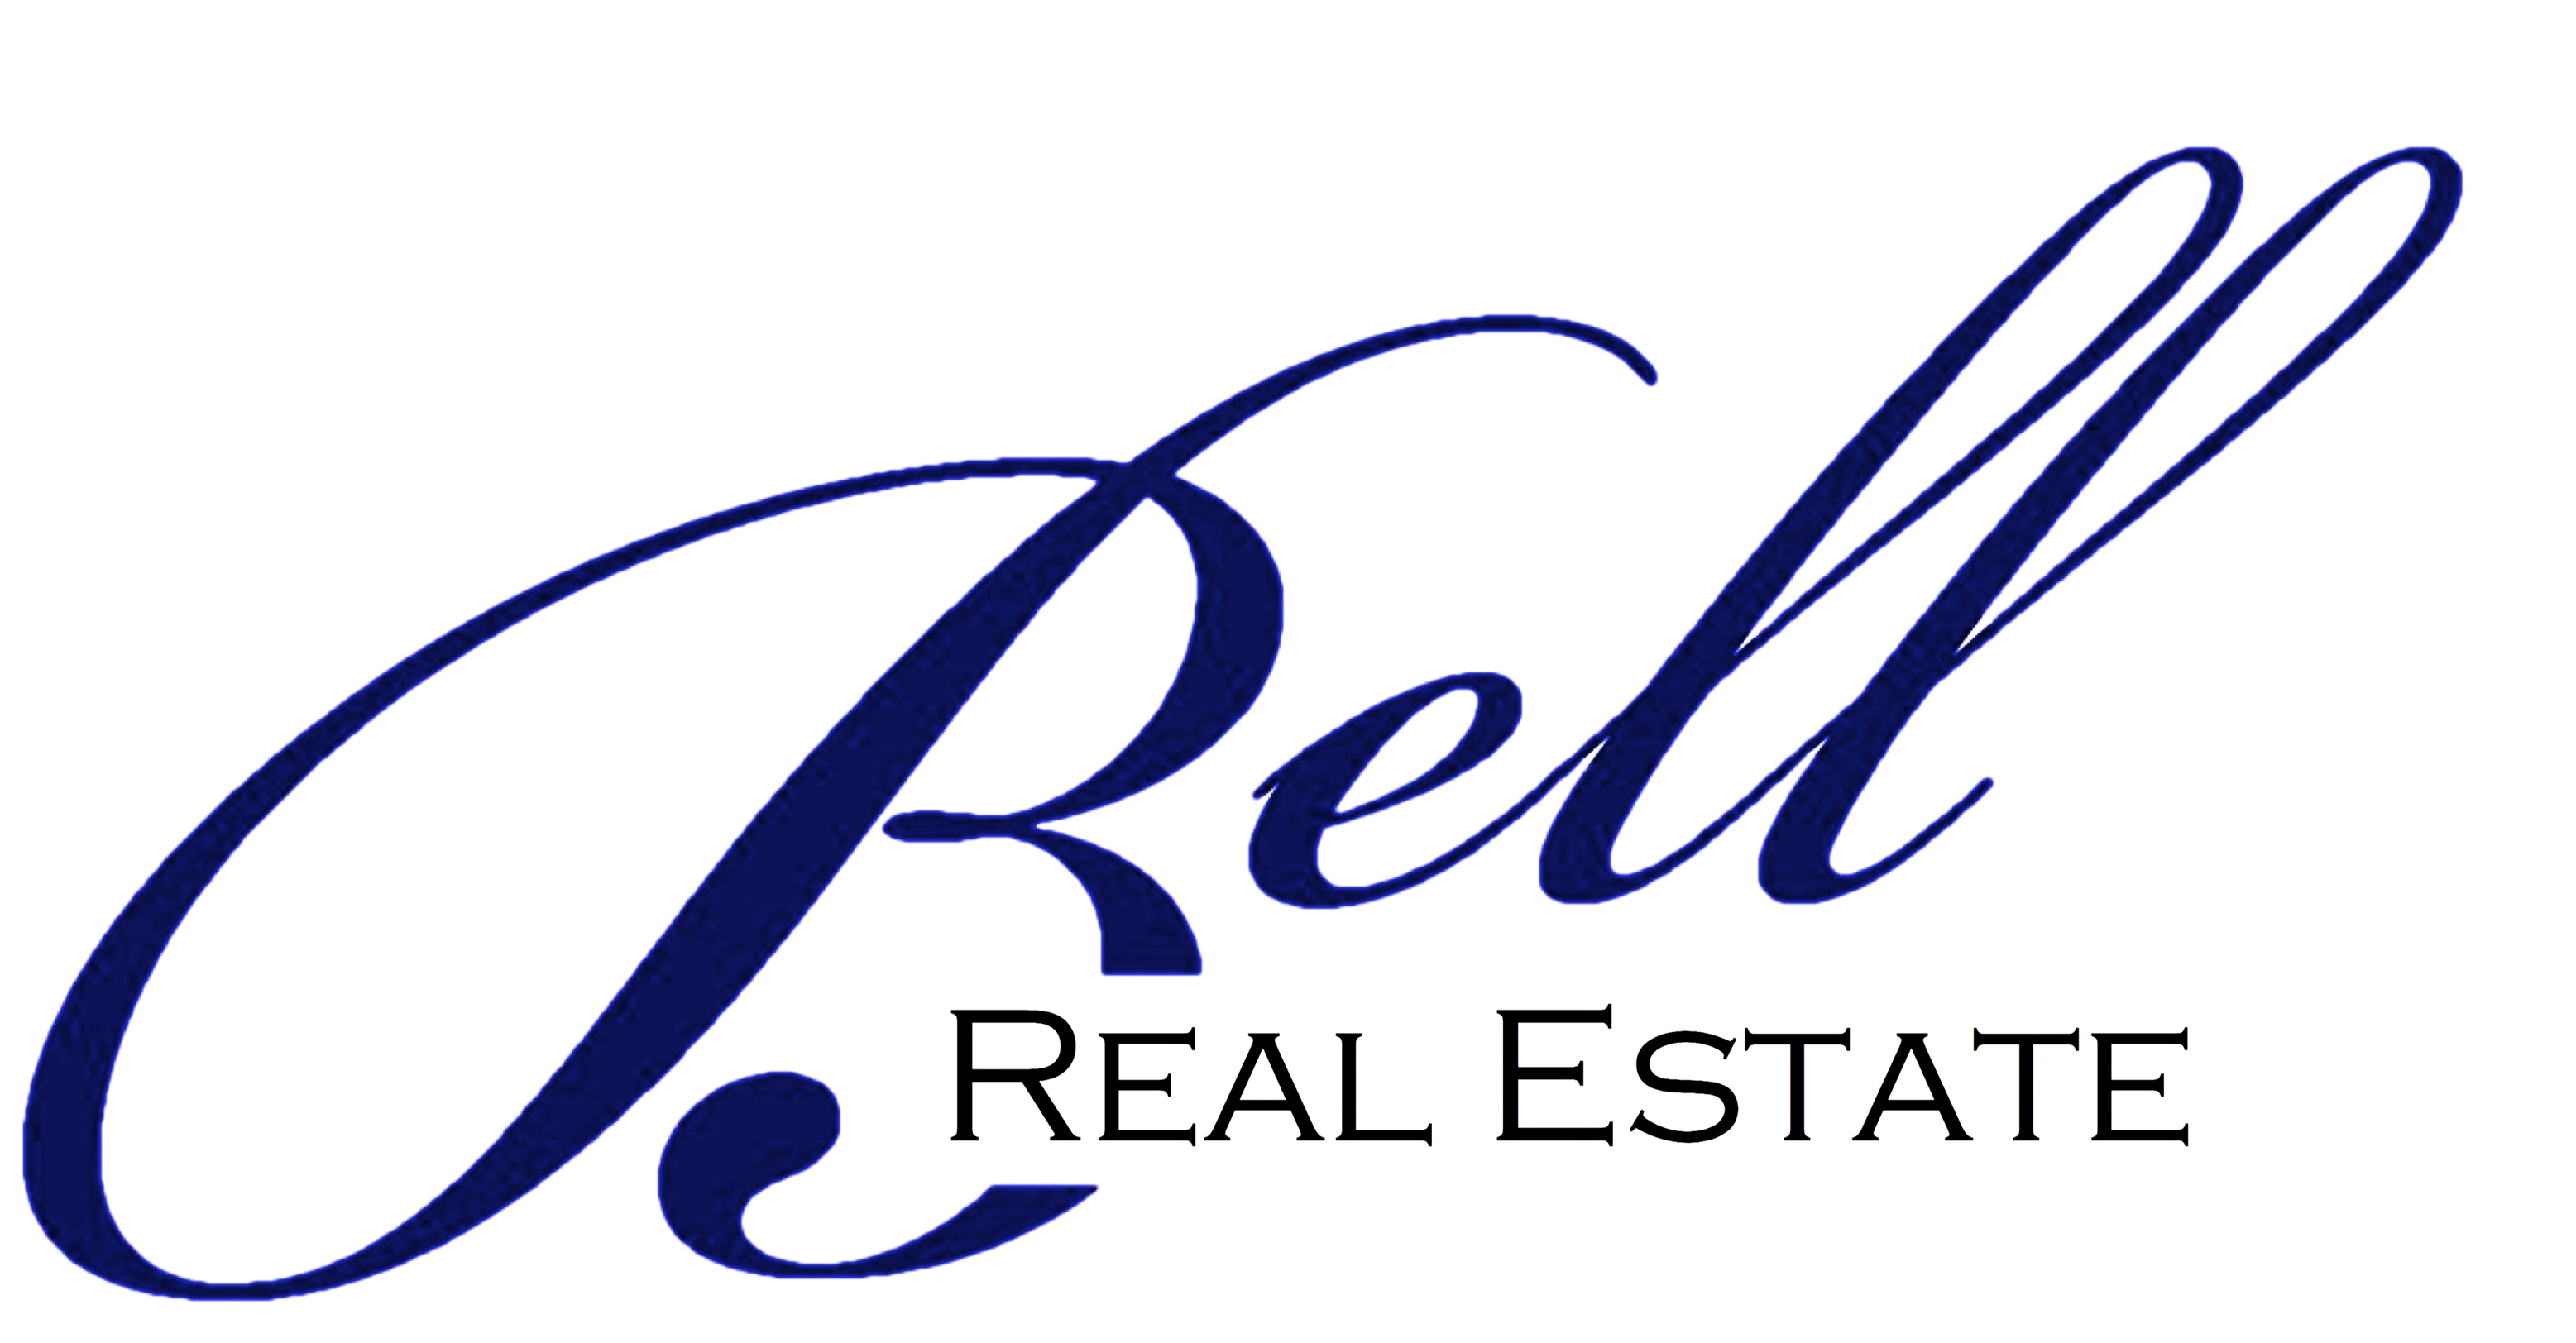 bell real estate